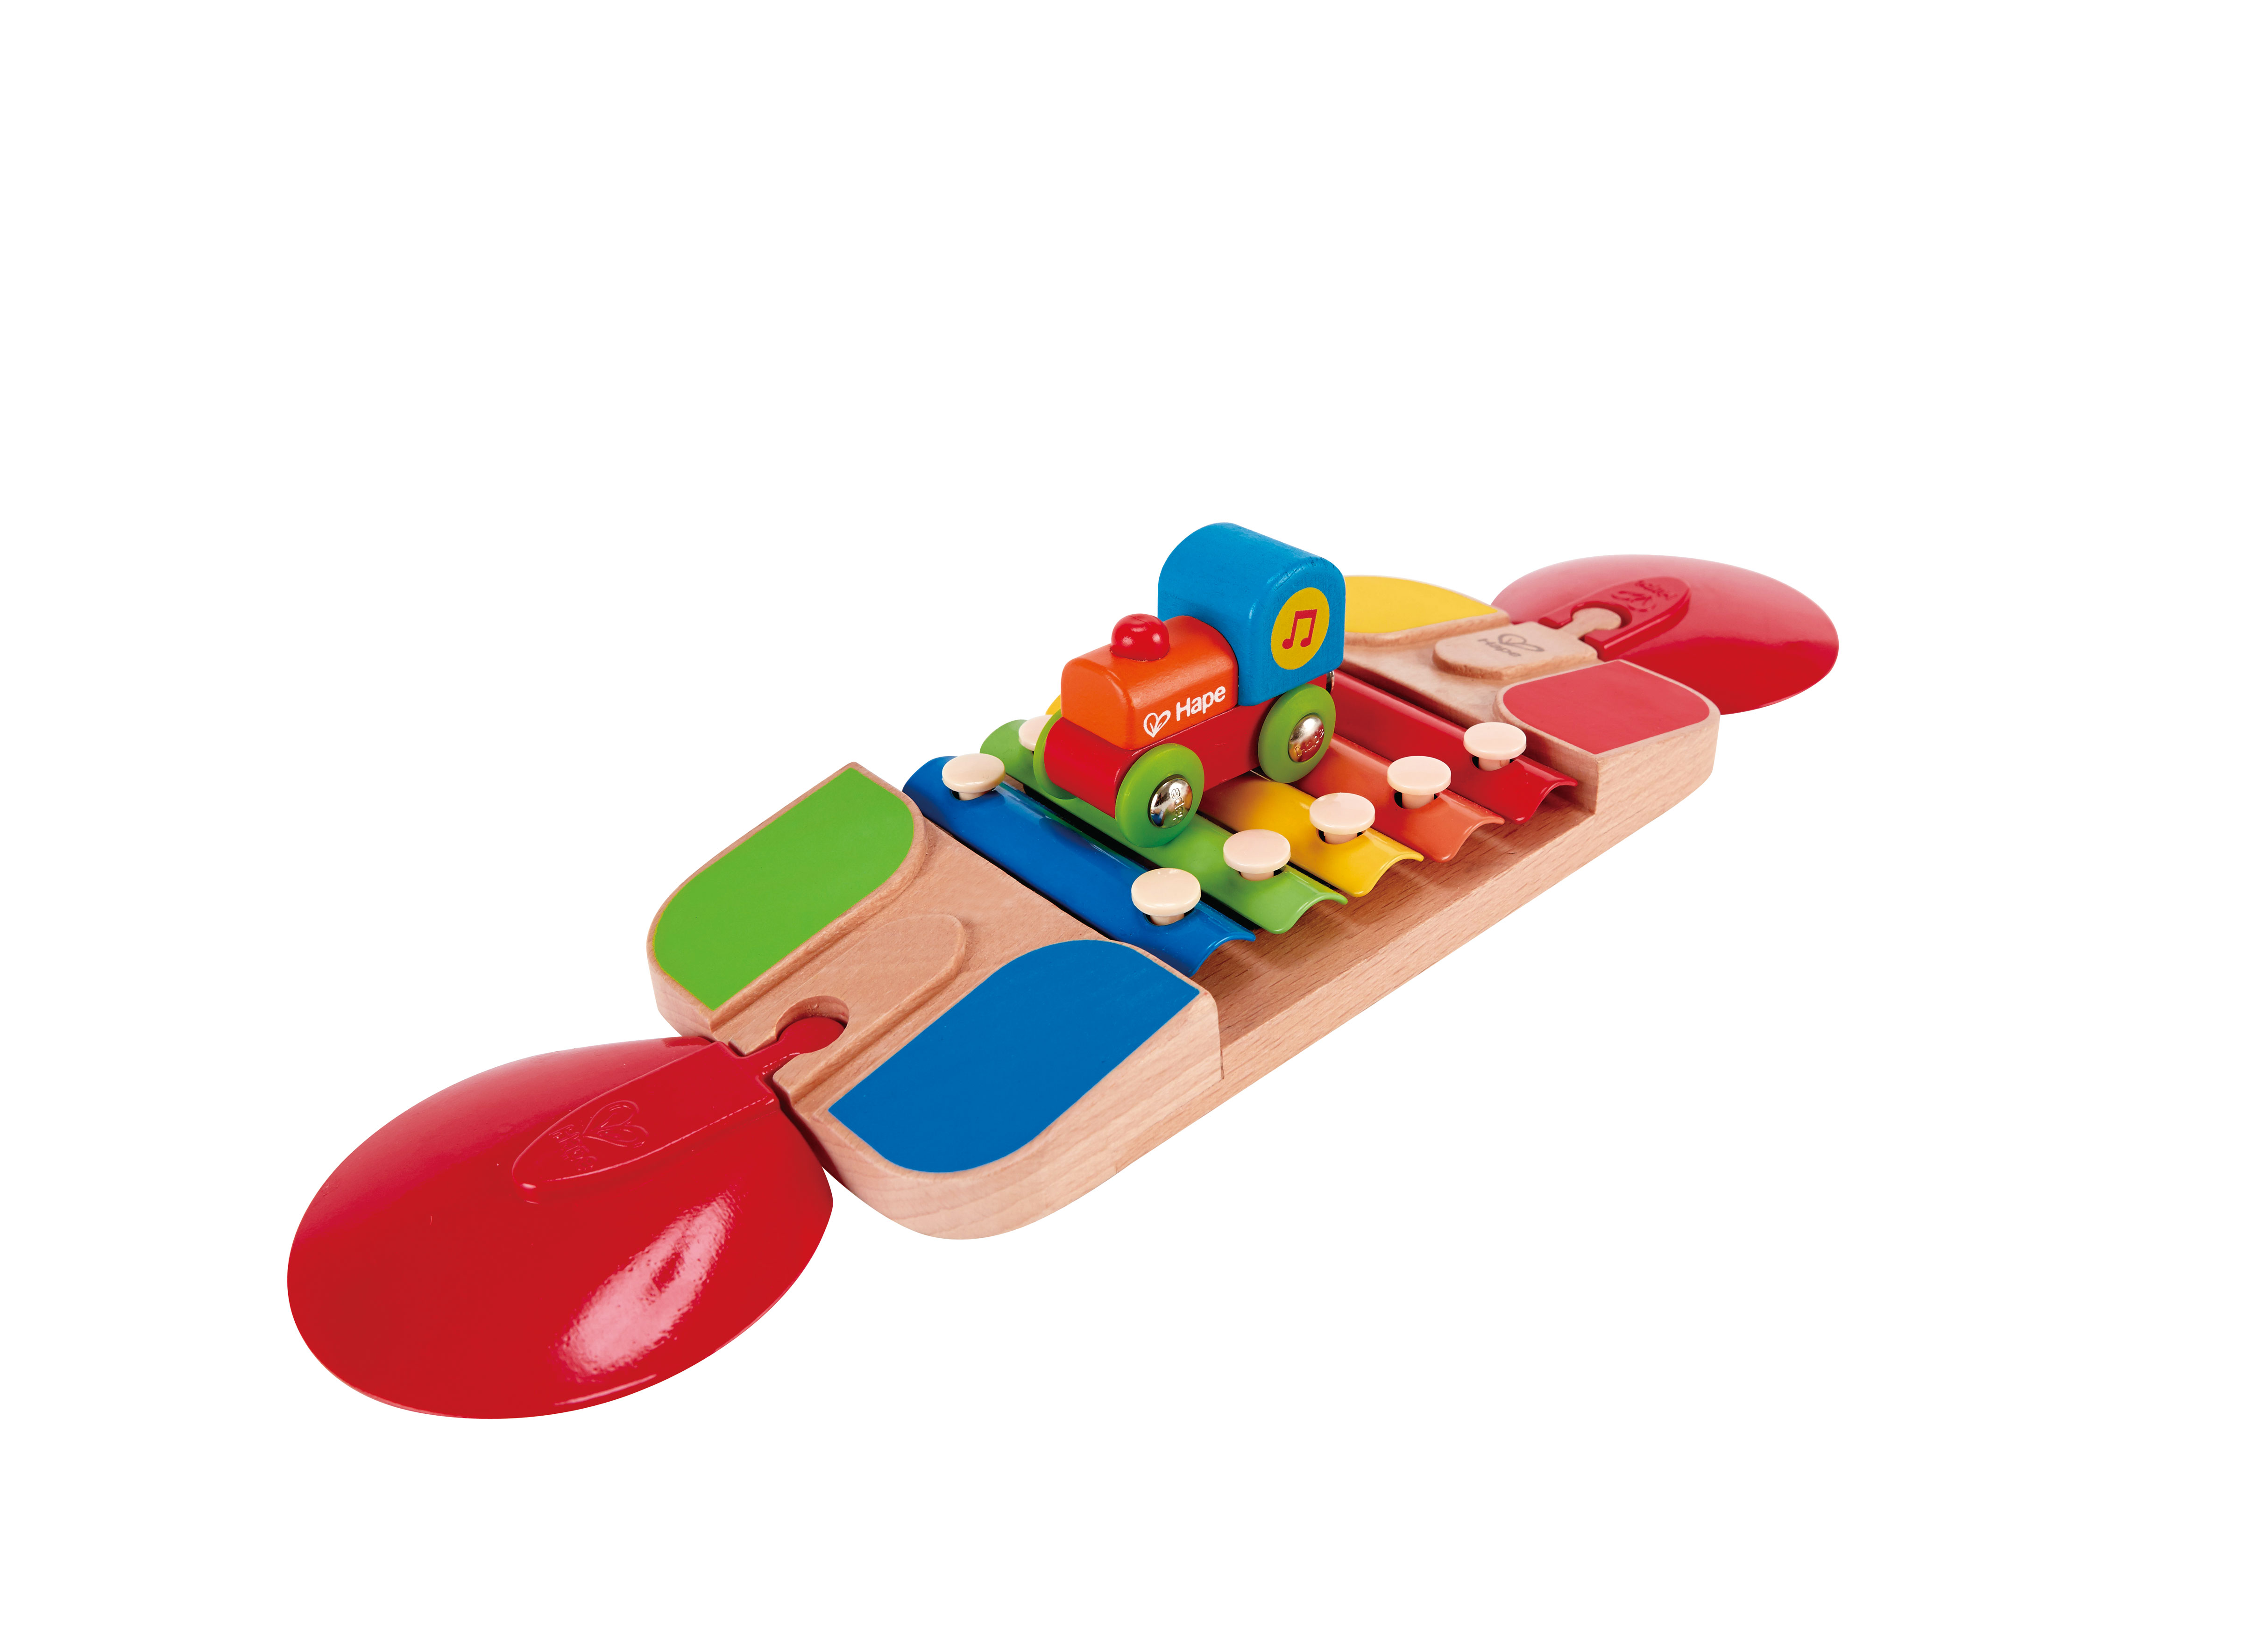 ... Xylophone Melody Track Wooden Train Musical Accessories Toddler 18m